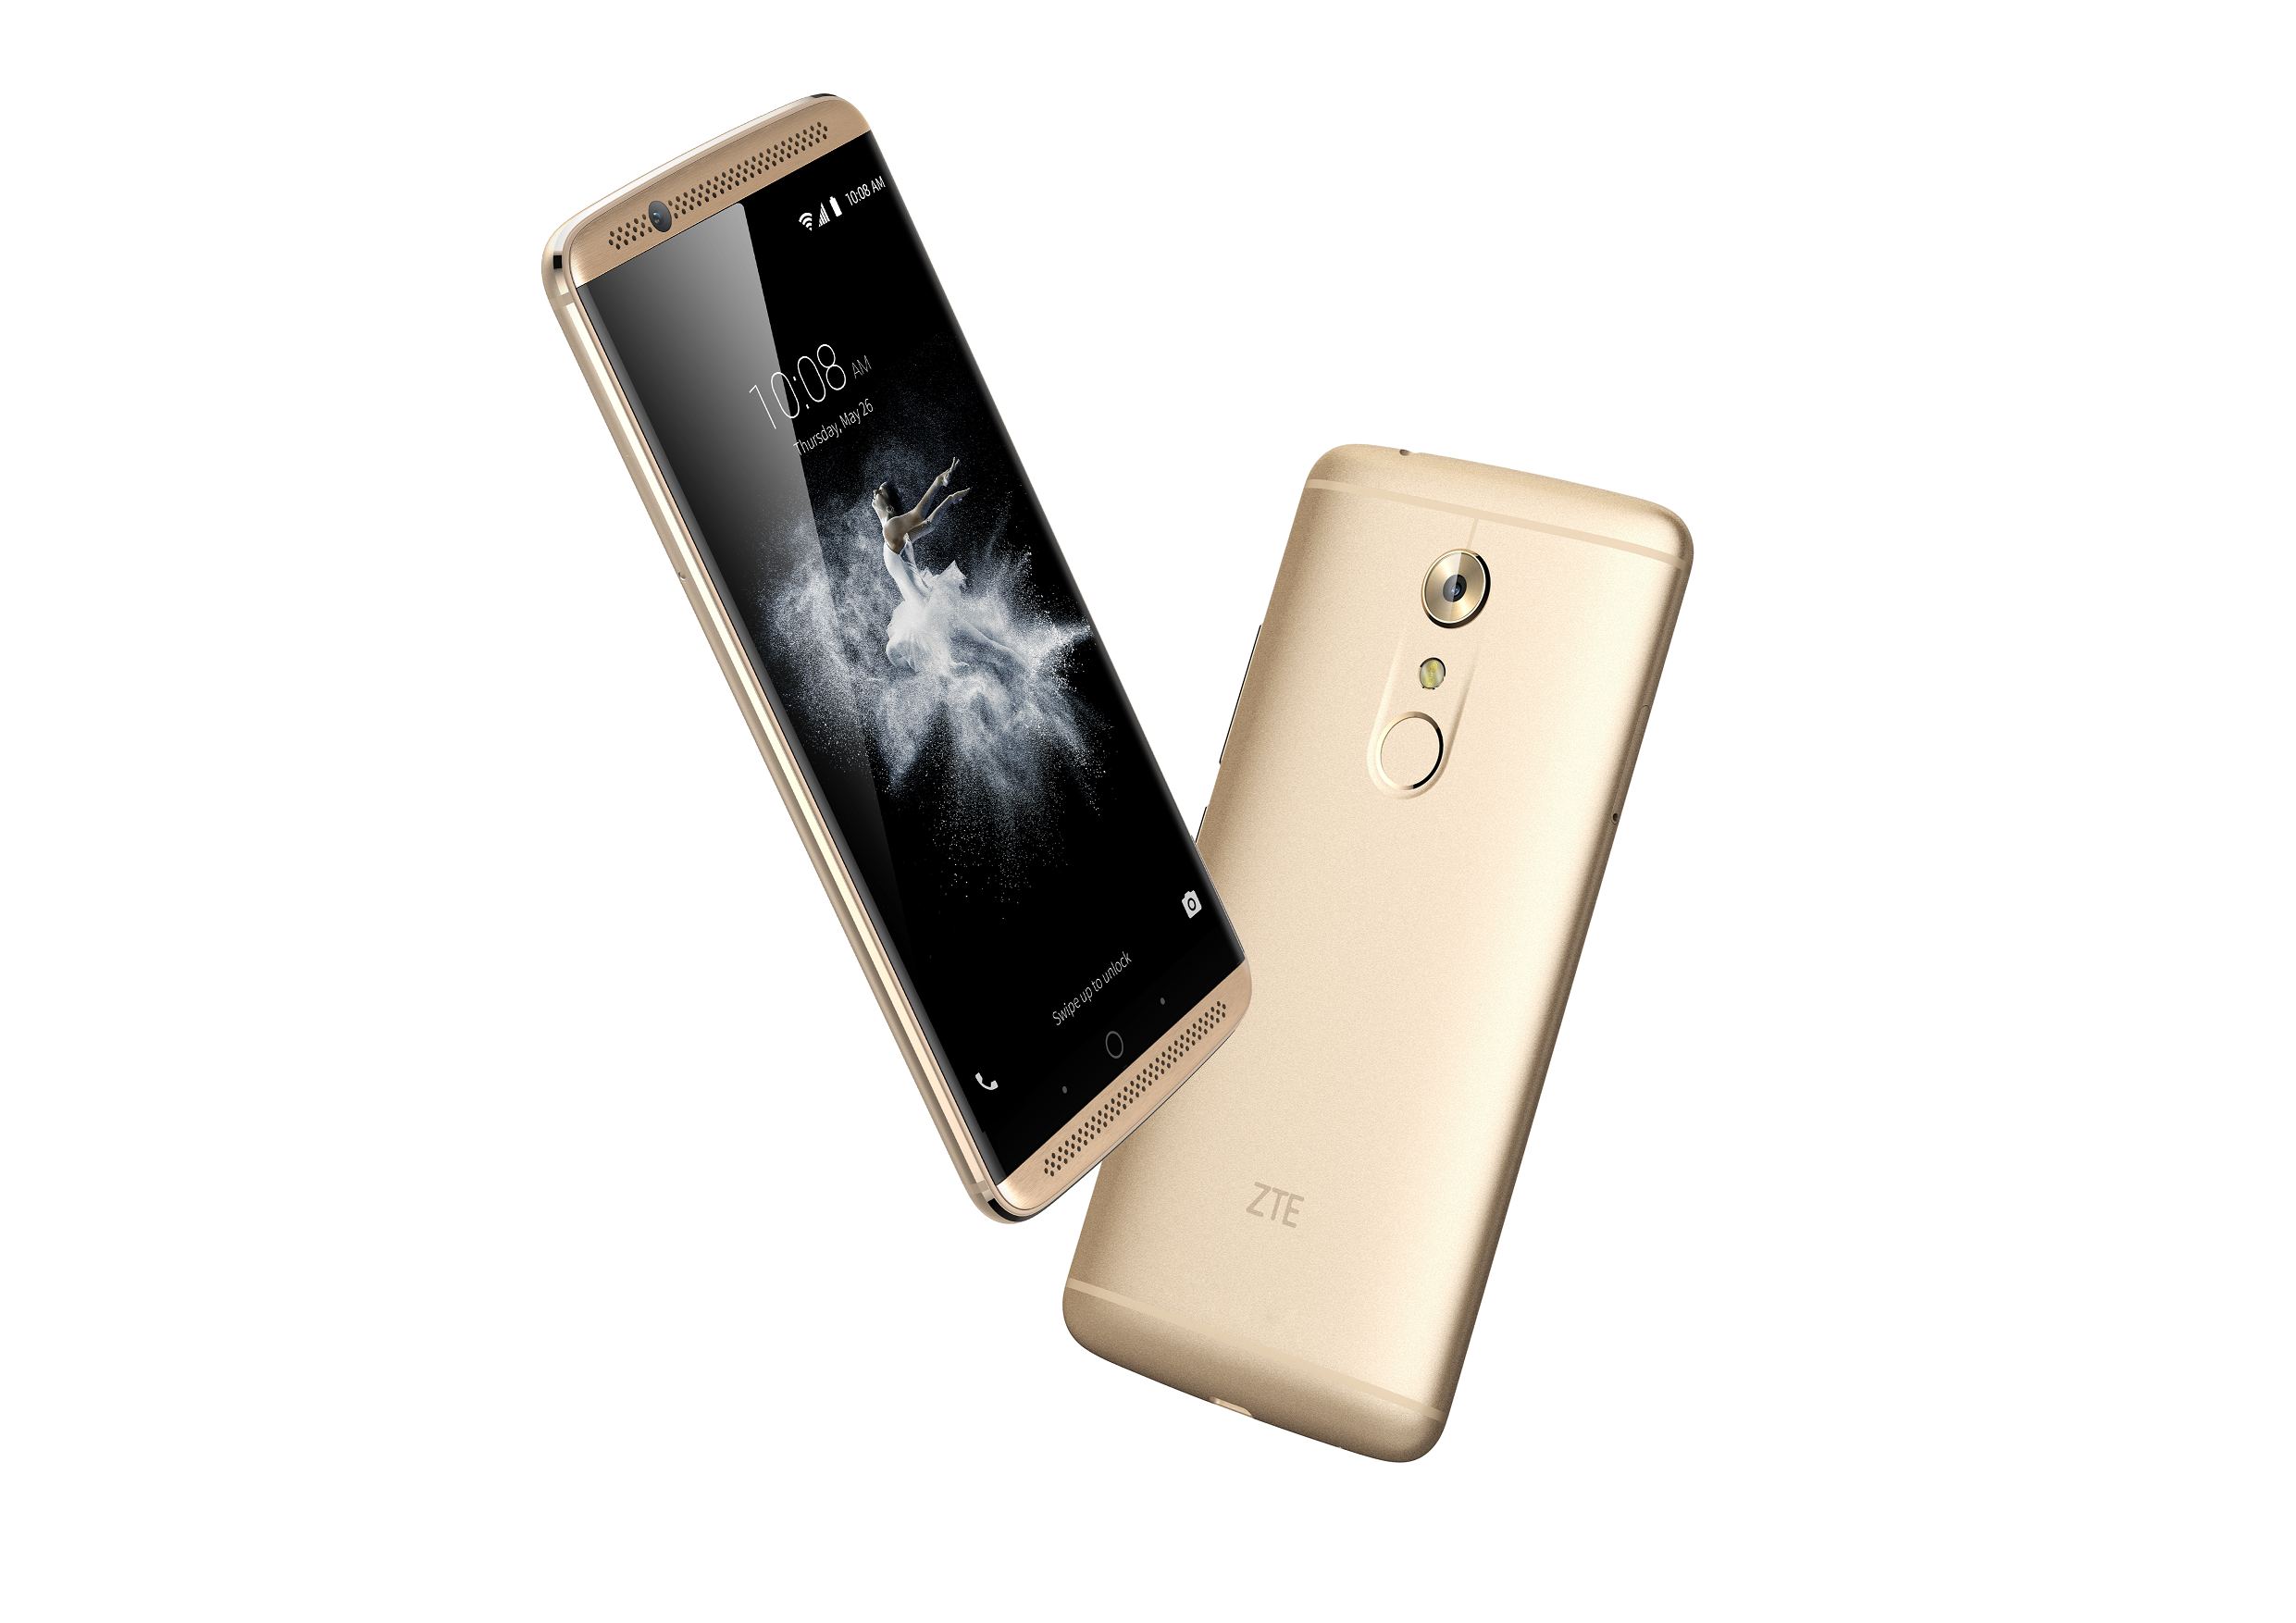 The ZTE AXON 7 is now on sale in France, Germany, Italy, Spain and the United Kingdom via Amazon